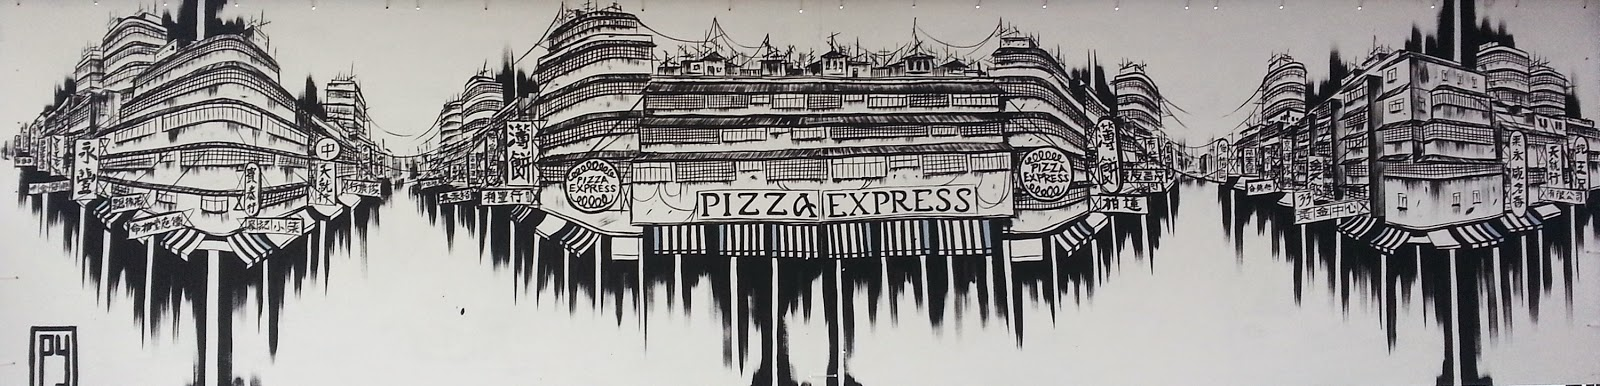 PizzExpress HK featuring artist Peter Yuill at Clockenflap 2014